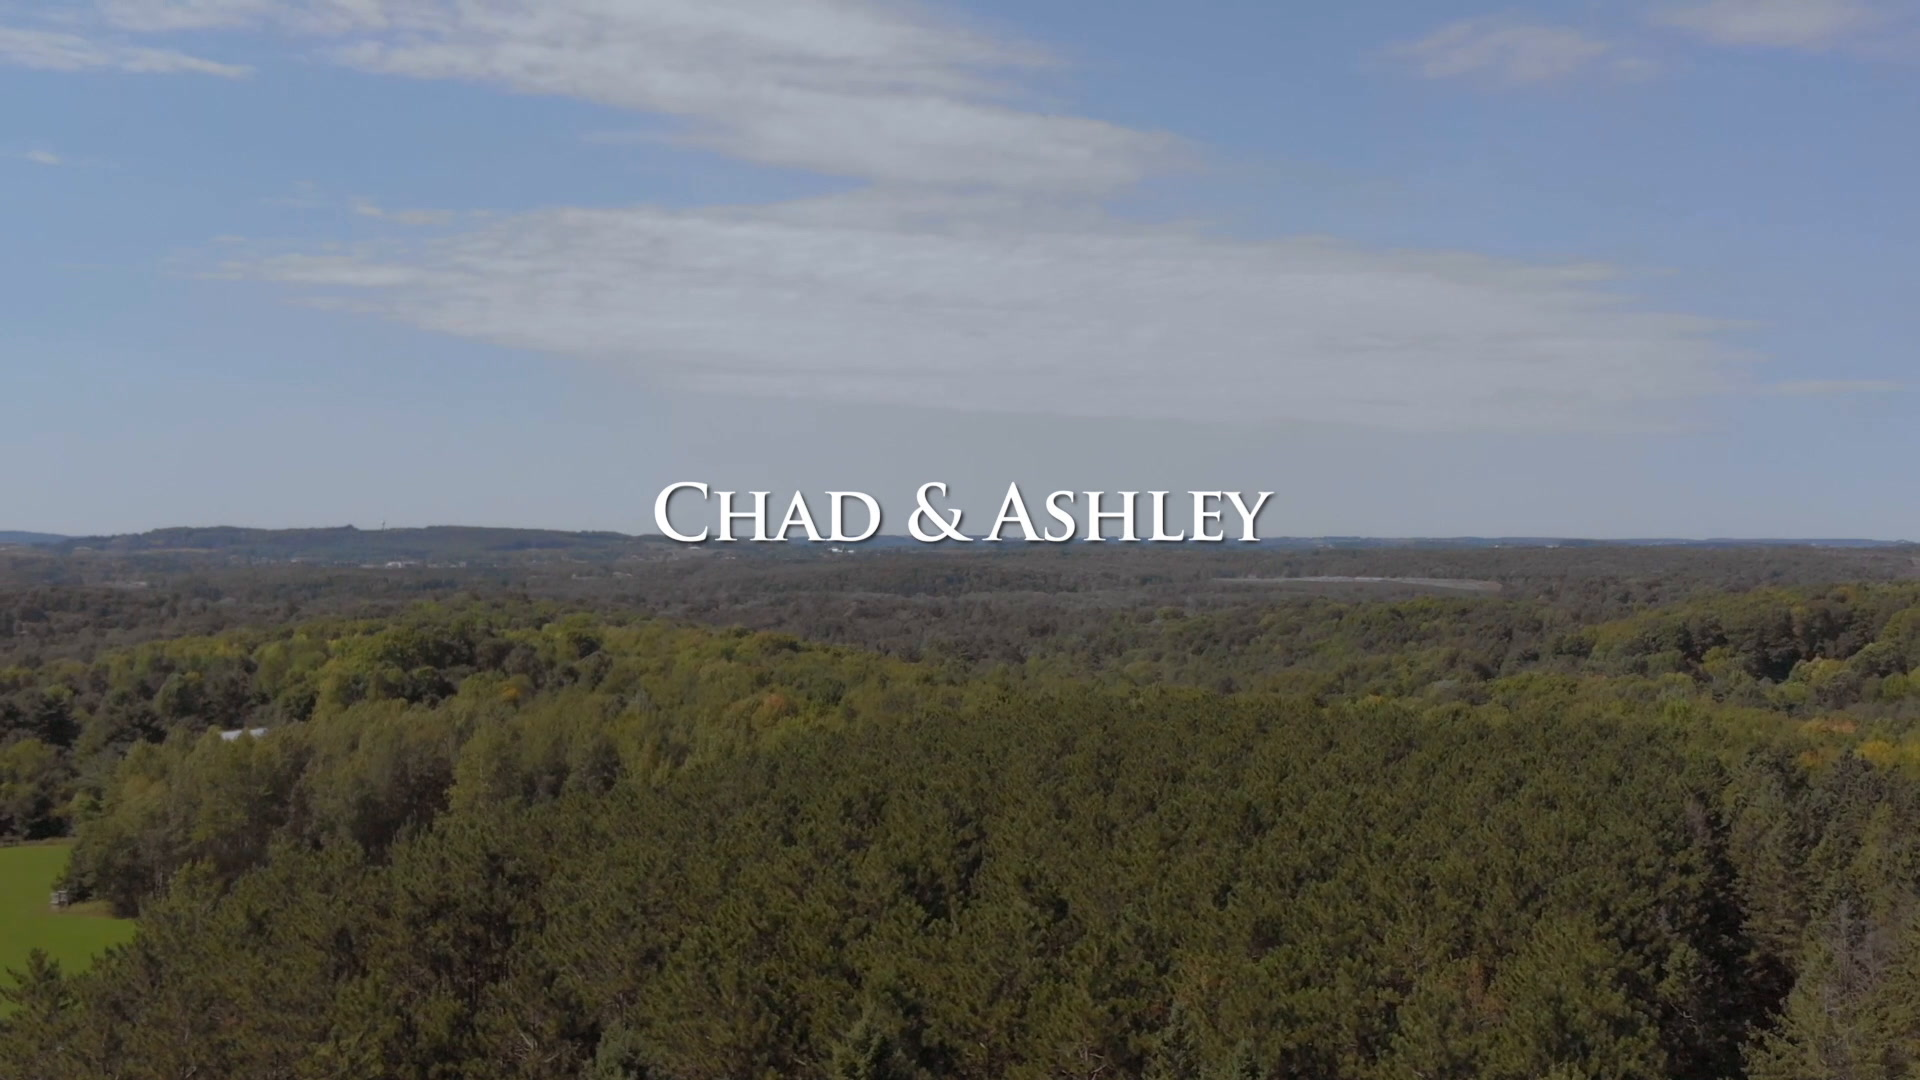 Chad + Ashley | Rothschild, Wisconsin | Rothschild Pavilion